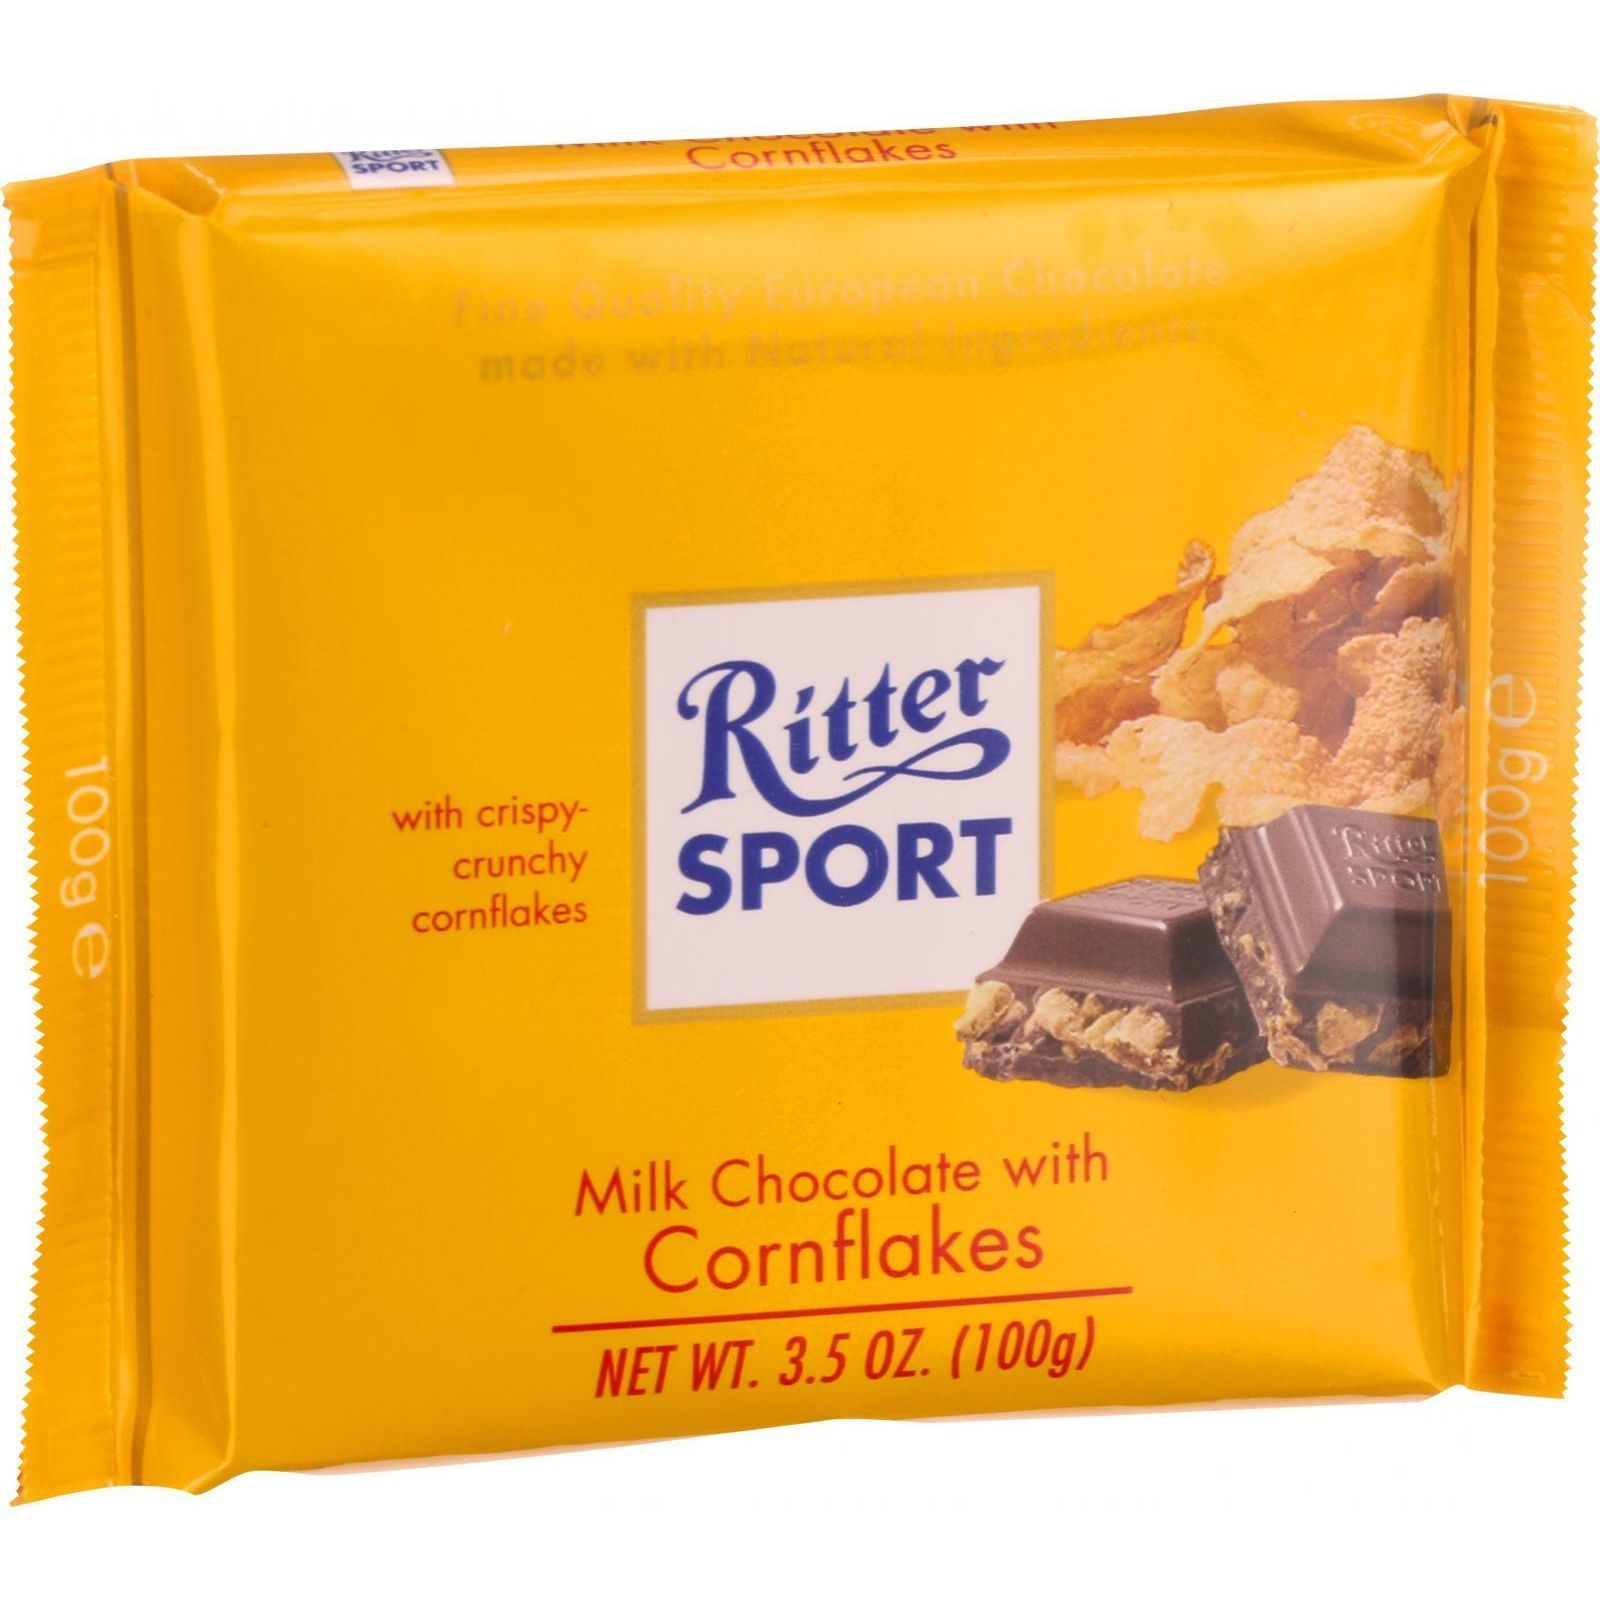 Ritter Sport Chocolate Bar - Milk Chocolate - Corn Flakes - 3.5 oz Bars - Case of 10